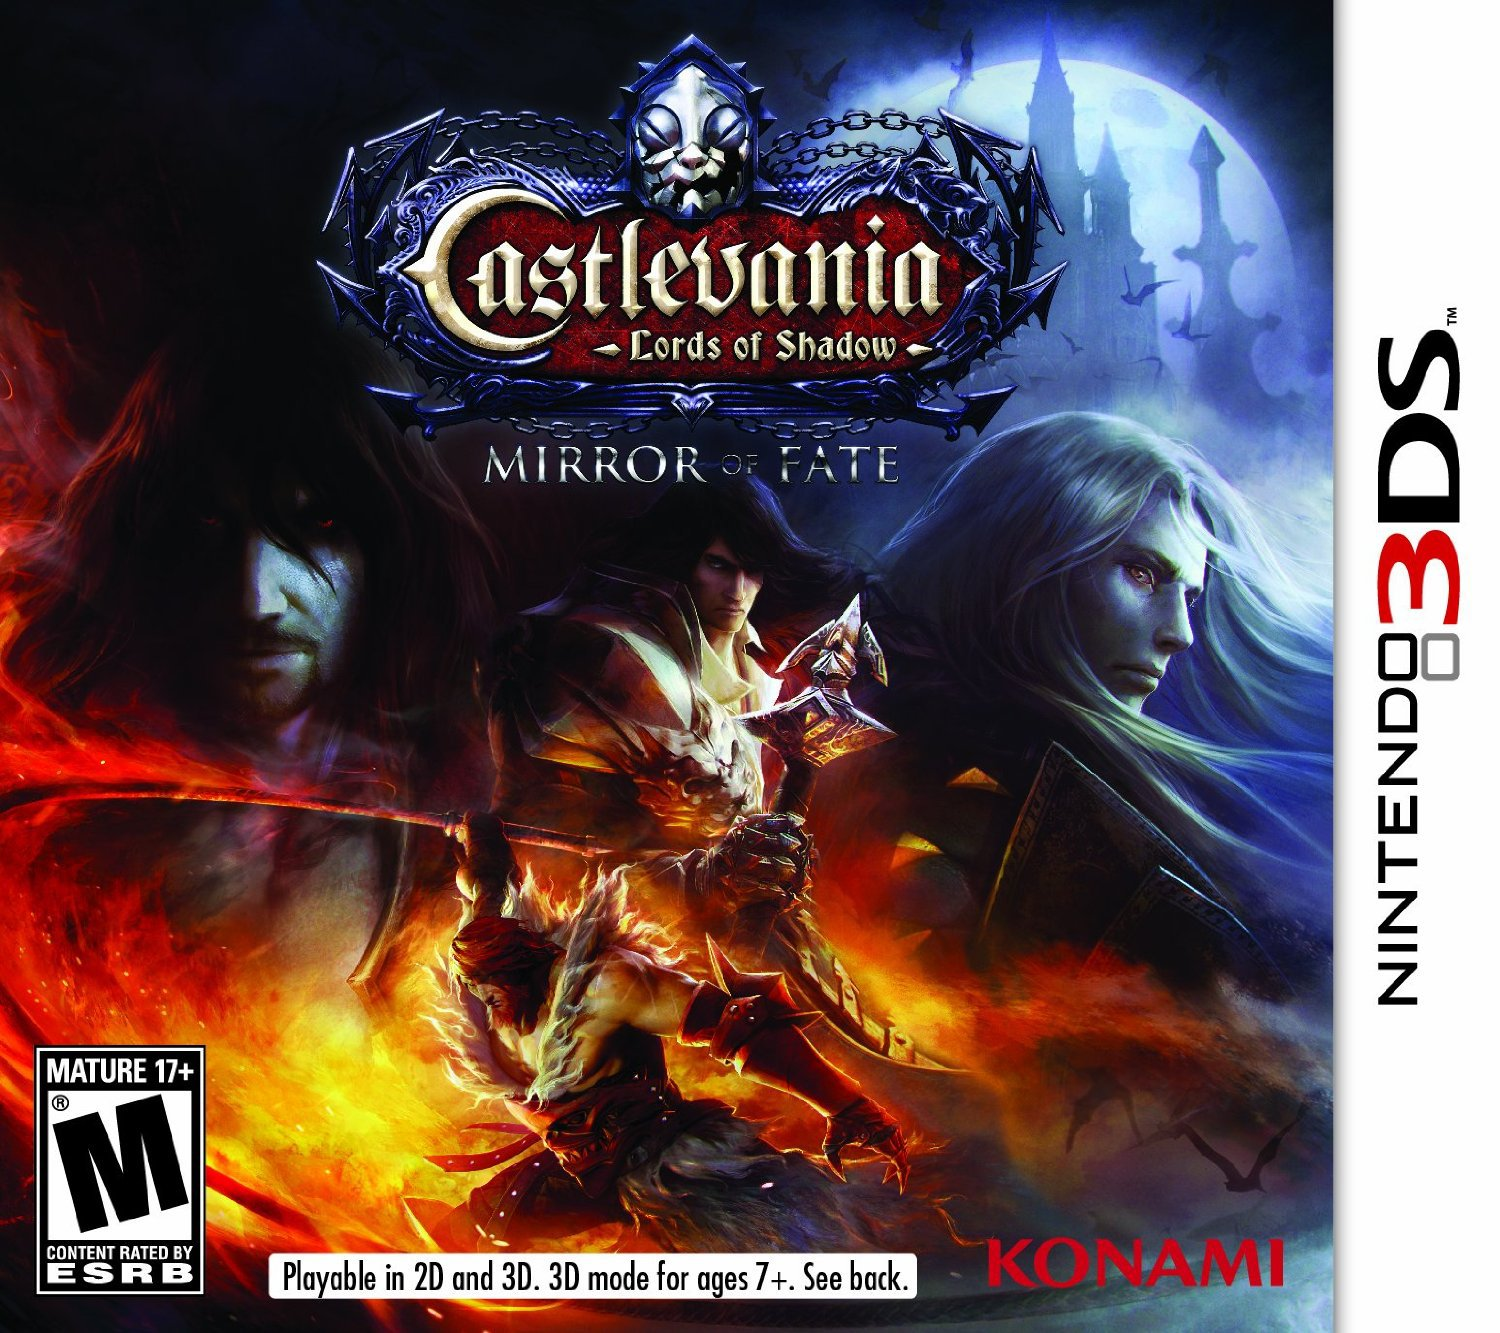 Castlevania: Lords of Shadow